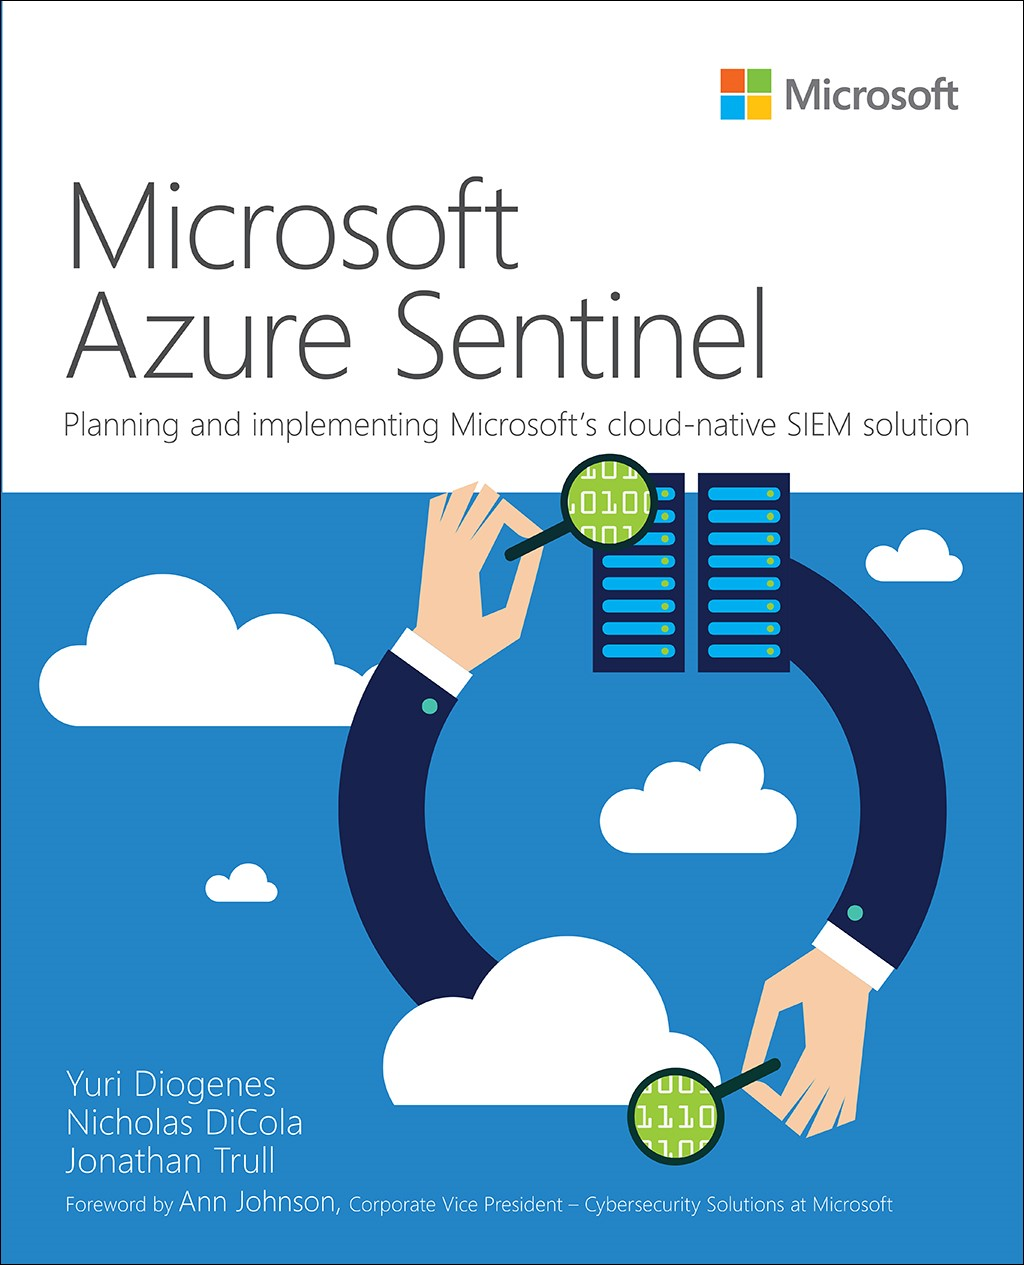 Microsoft Azure Sentinel: Planning and implementing Microsofts cloud-native SIEM solution